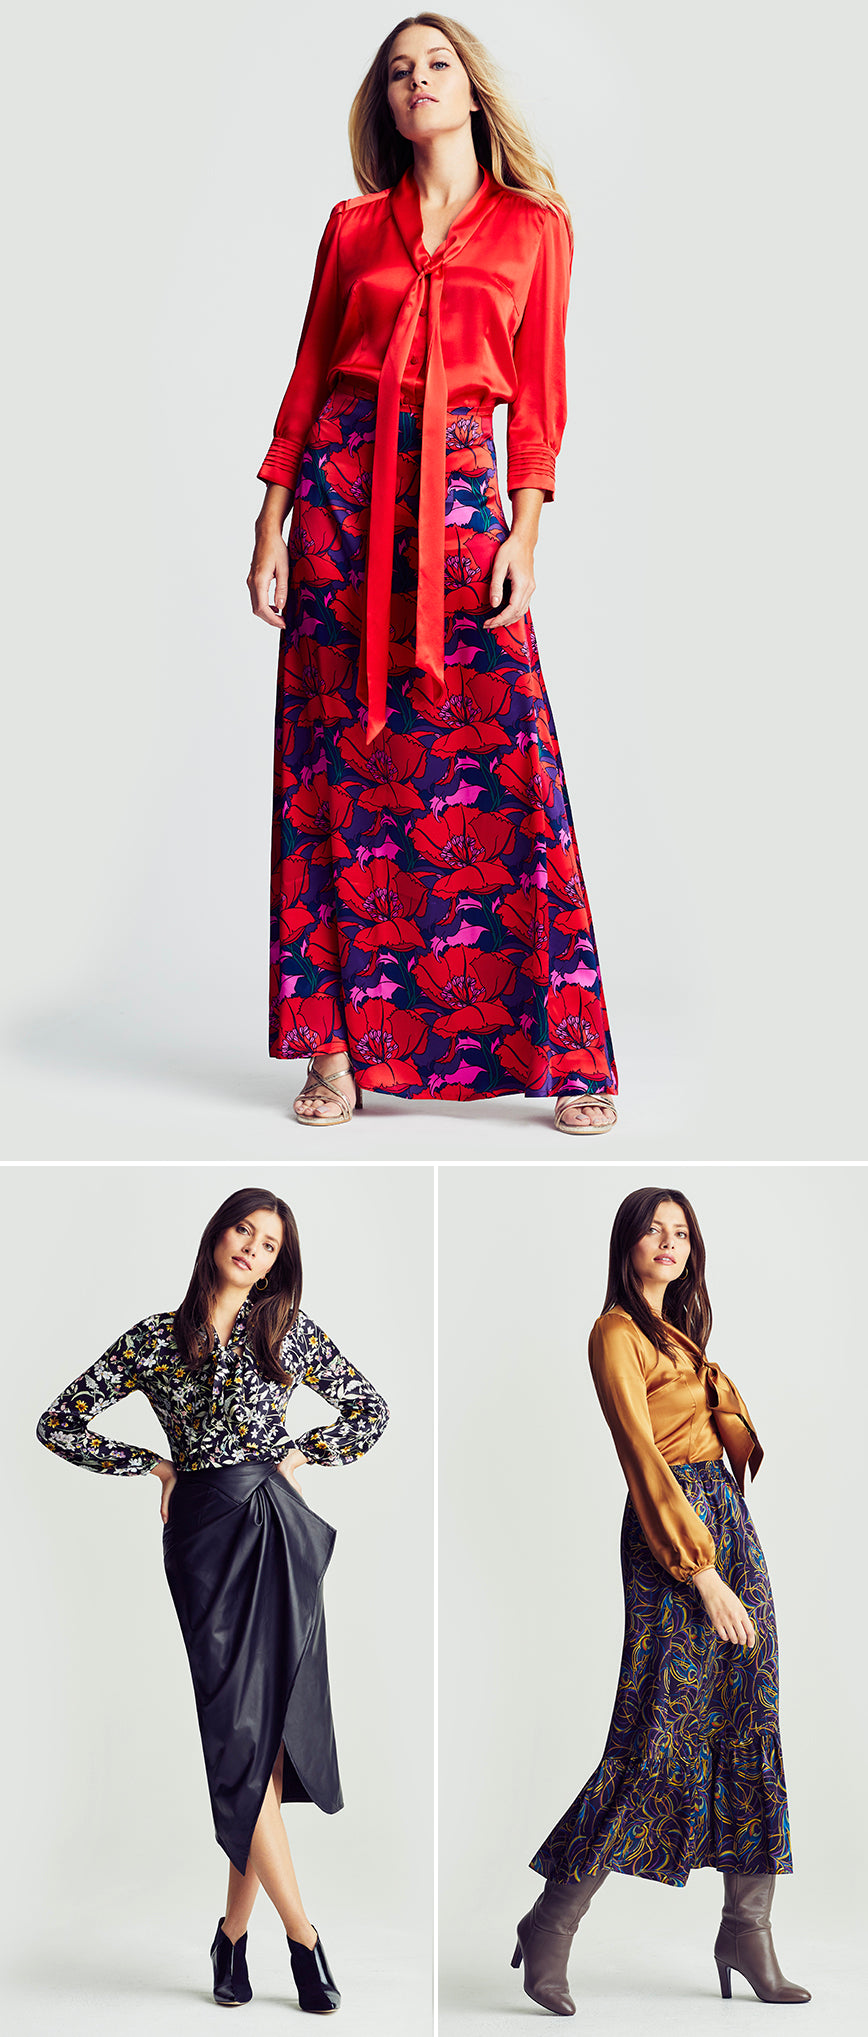 ridleylondon-printed-floral-silk-maxi-skirt-and-pussy-bow-blouse-christmas-party-fashion